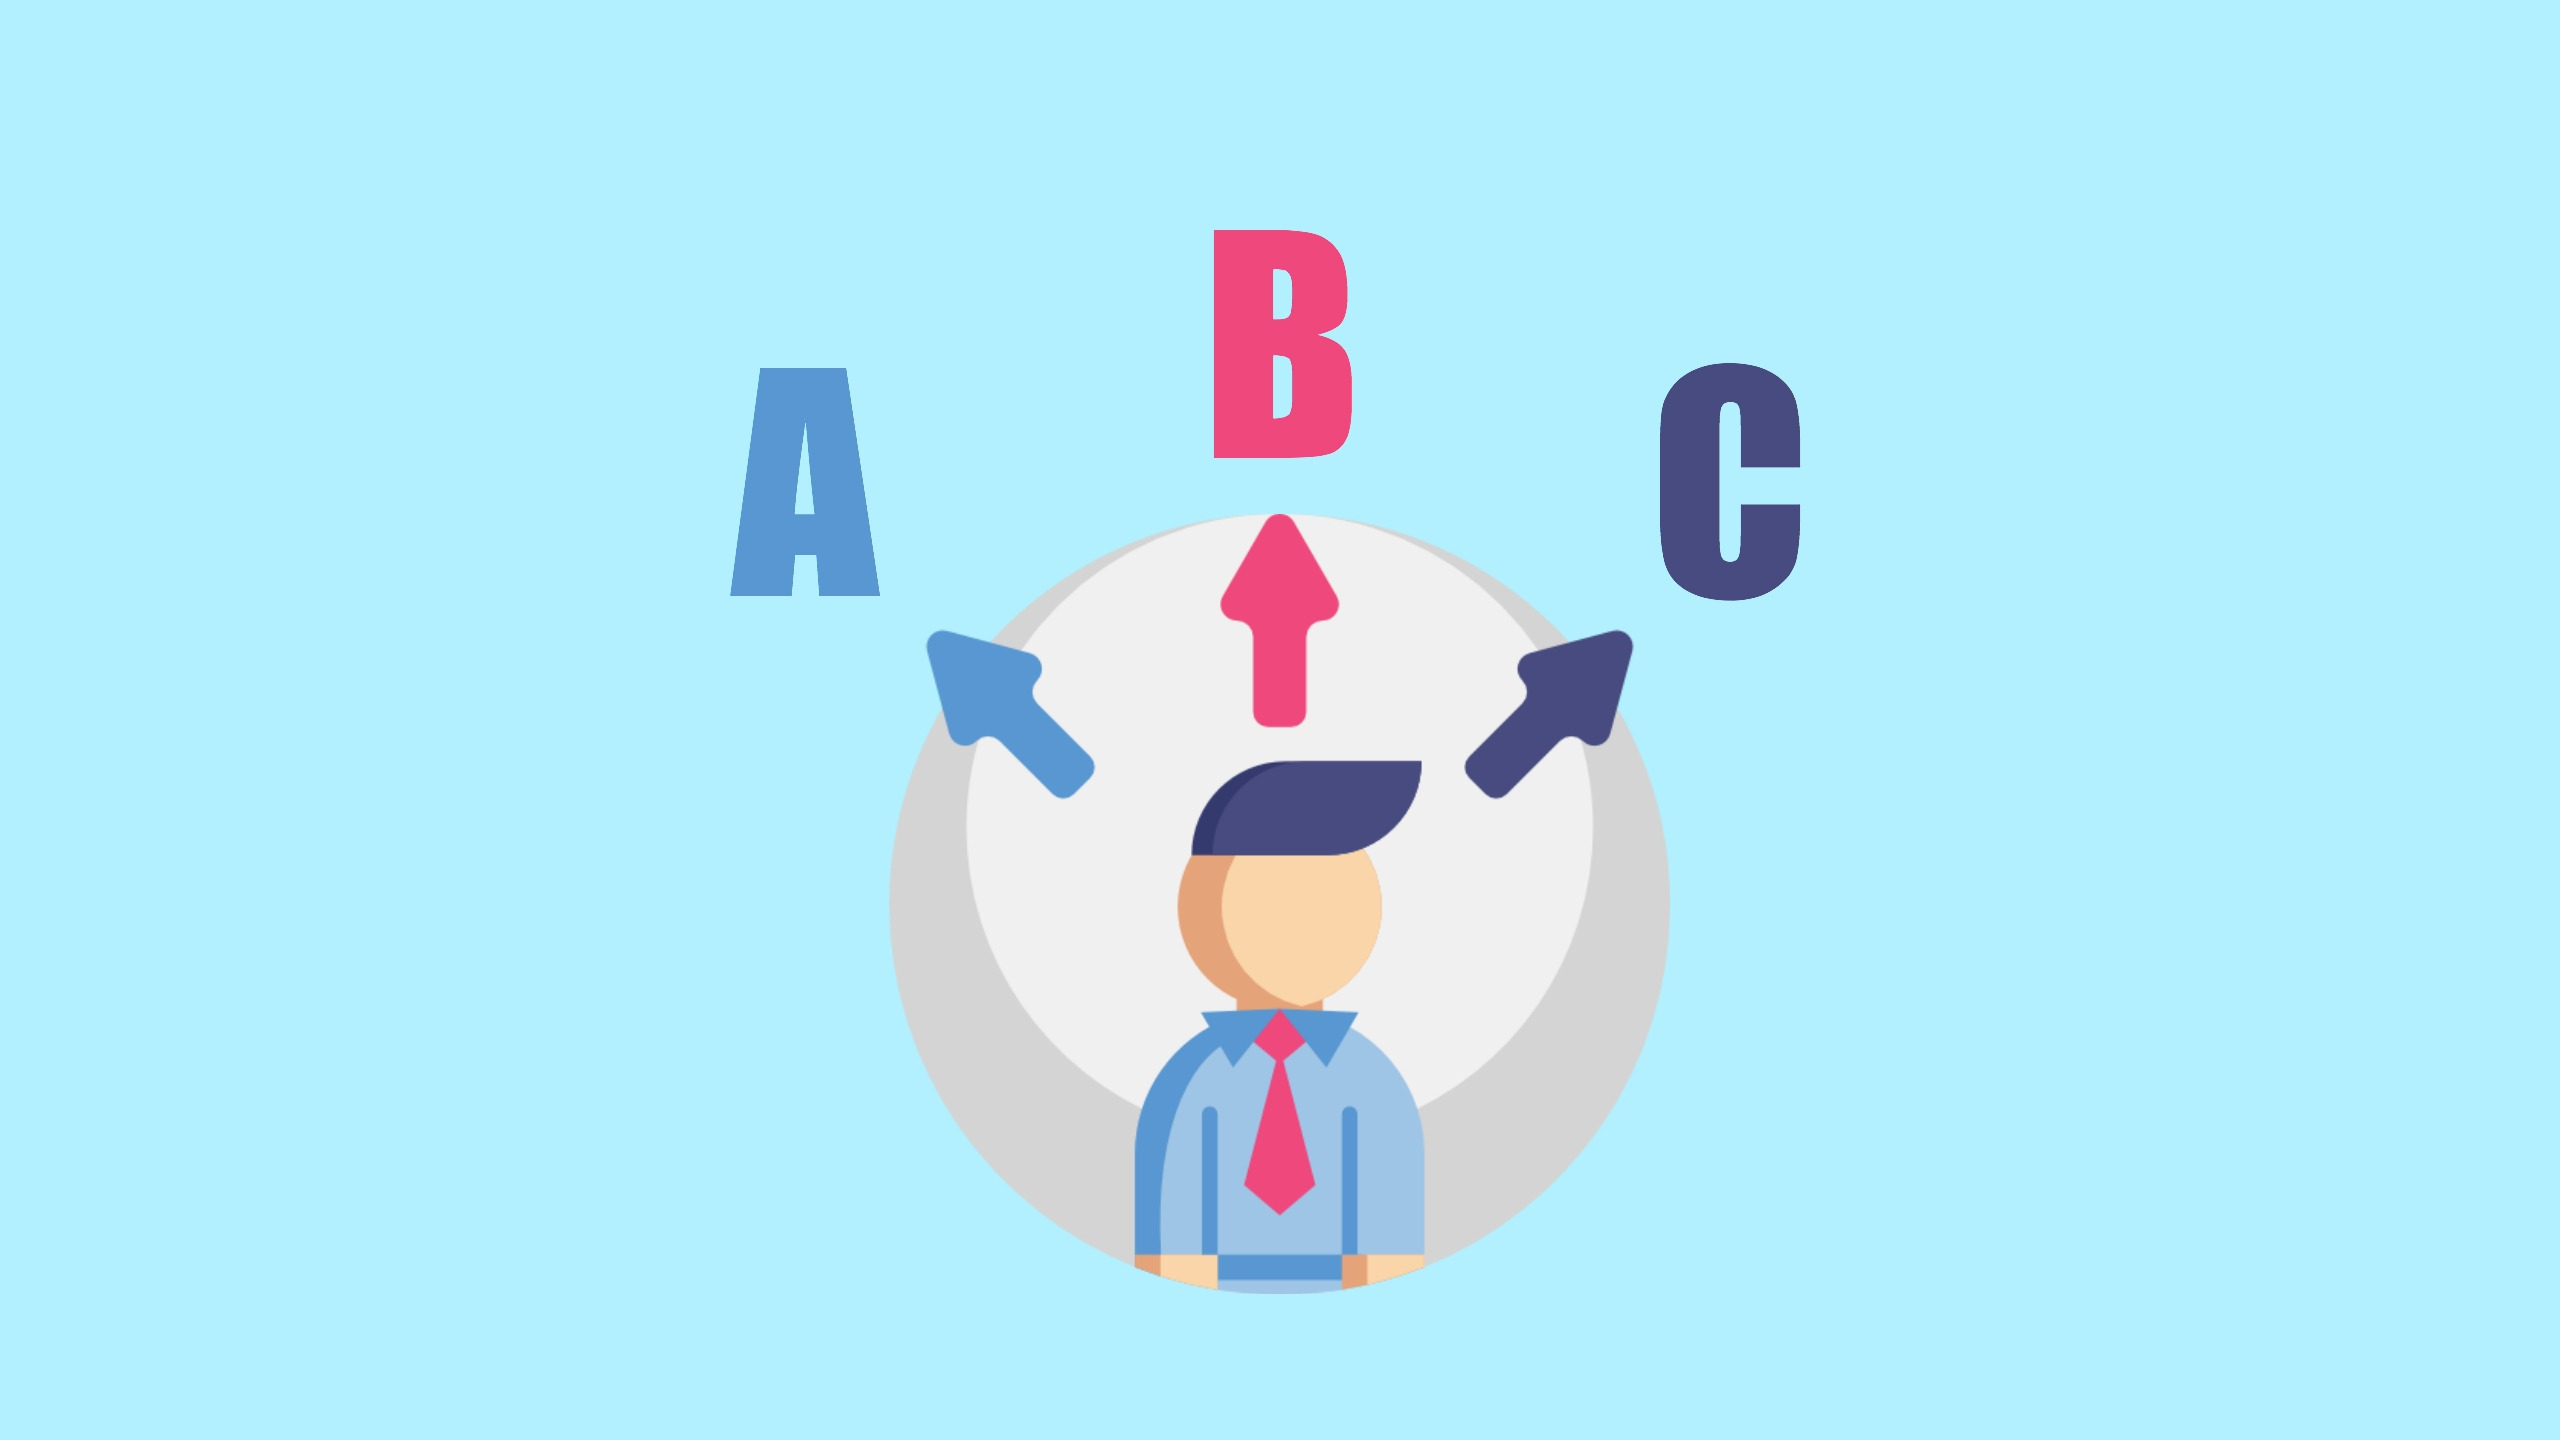 A cartoon image of a man stands under three arrows pointing at the letters A, B and C to represent how students choose answers for IELTS Multiple Choice Questions